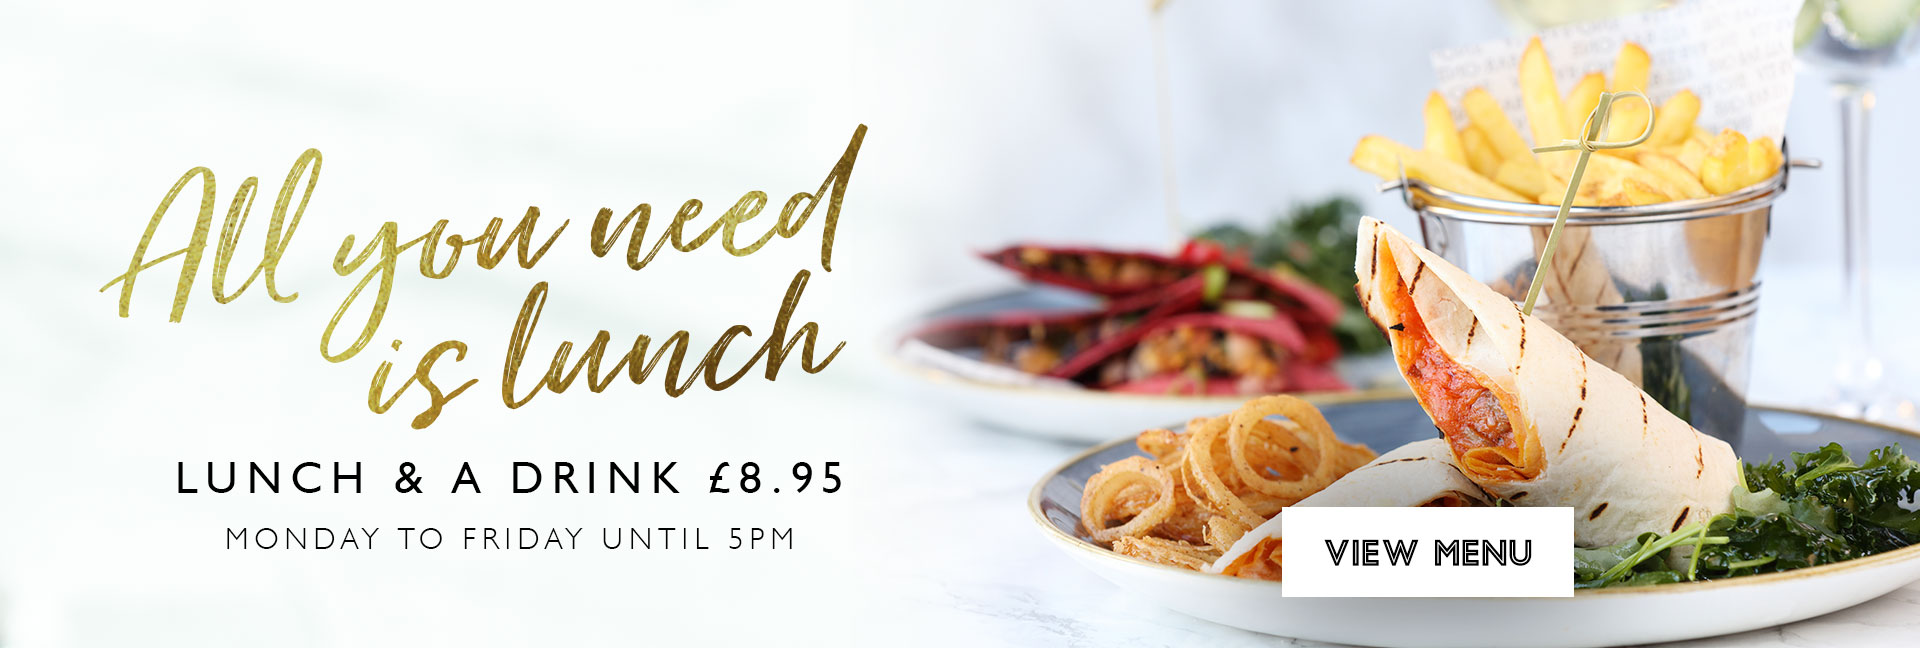 Lunch Offer at All Bar One Brindleyplace